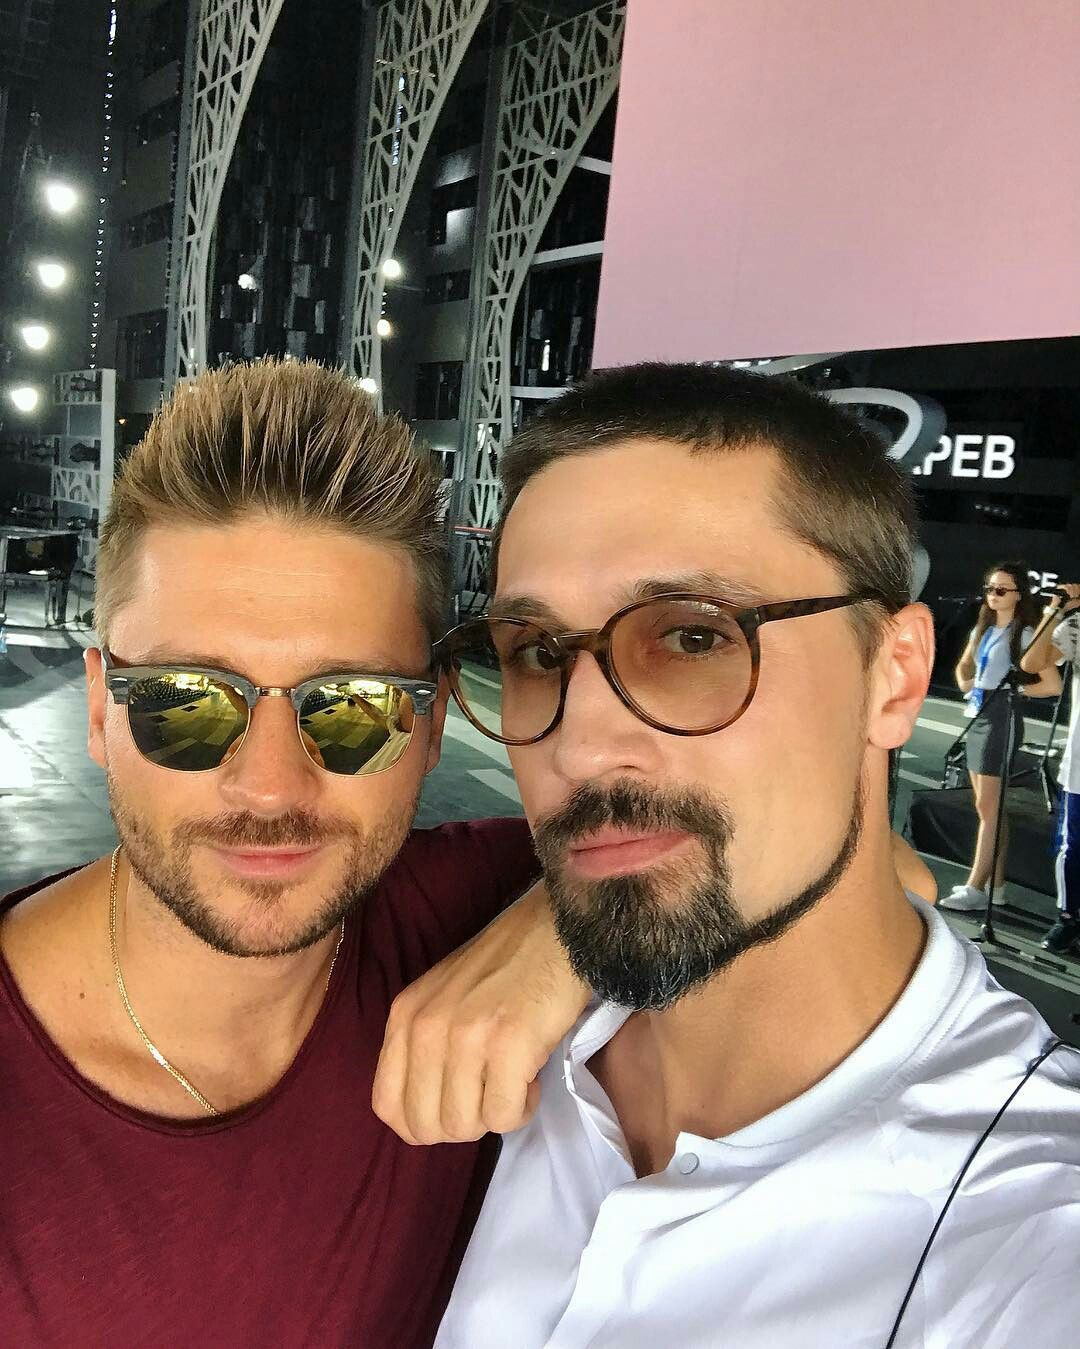 The son of Sergei Lazarev shows artistic inclinations 09.02.2018 47